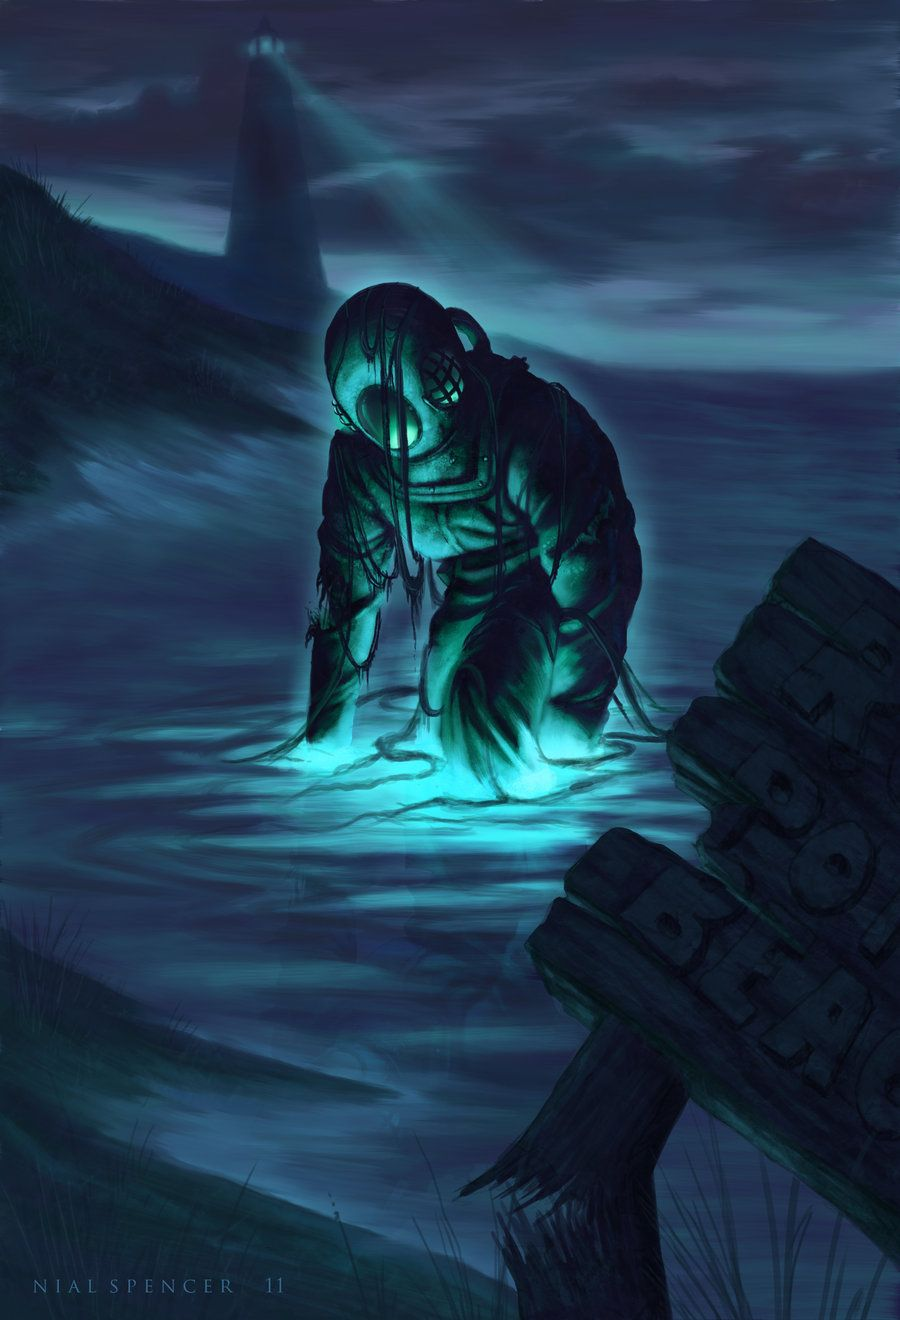 A Clue For Scooby Doo By Starvingzombie On Deviantart Scooby Doo Diver Art Scooby Doo Mystery